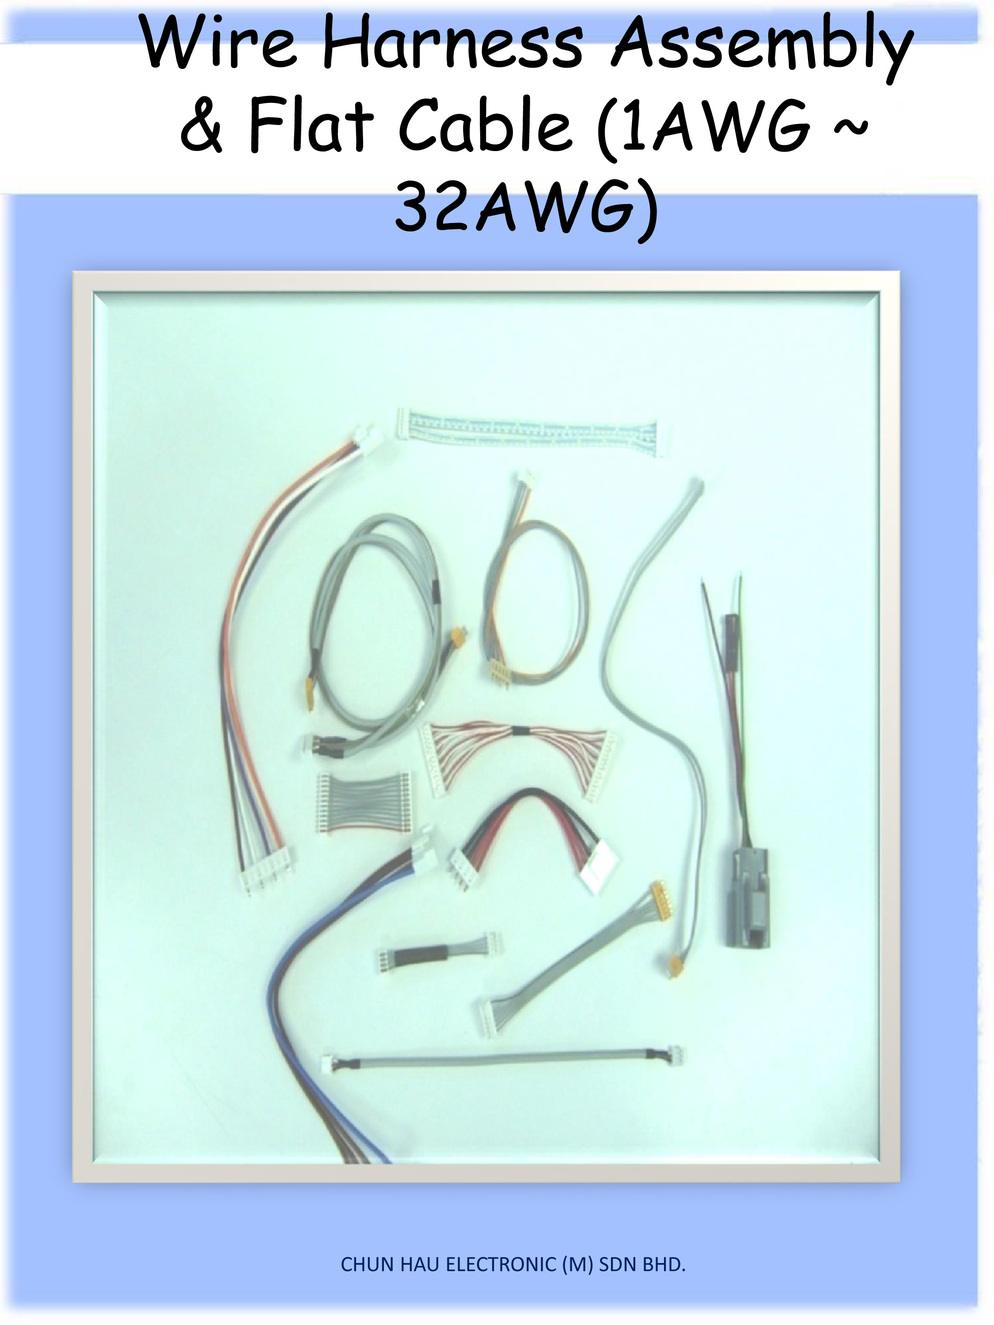 2160137?1436946799 about us chun hau electronic (m) sdn bhd perfect wire harness sdn bhd at panicattacktreatment.co